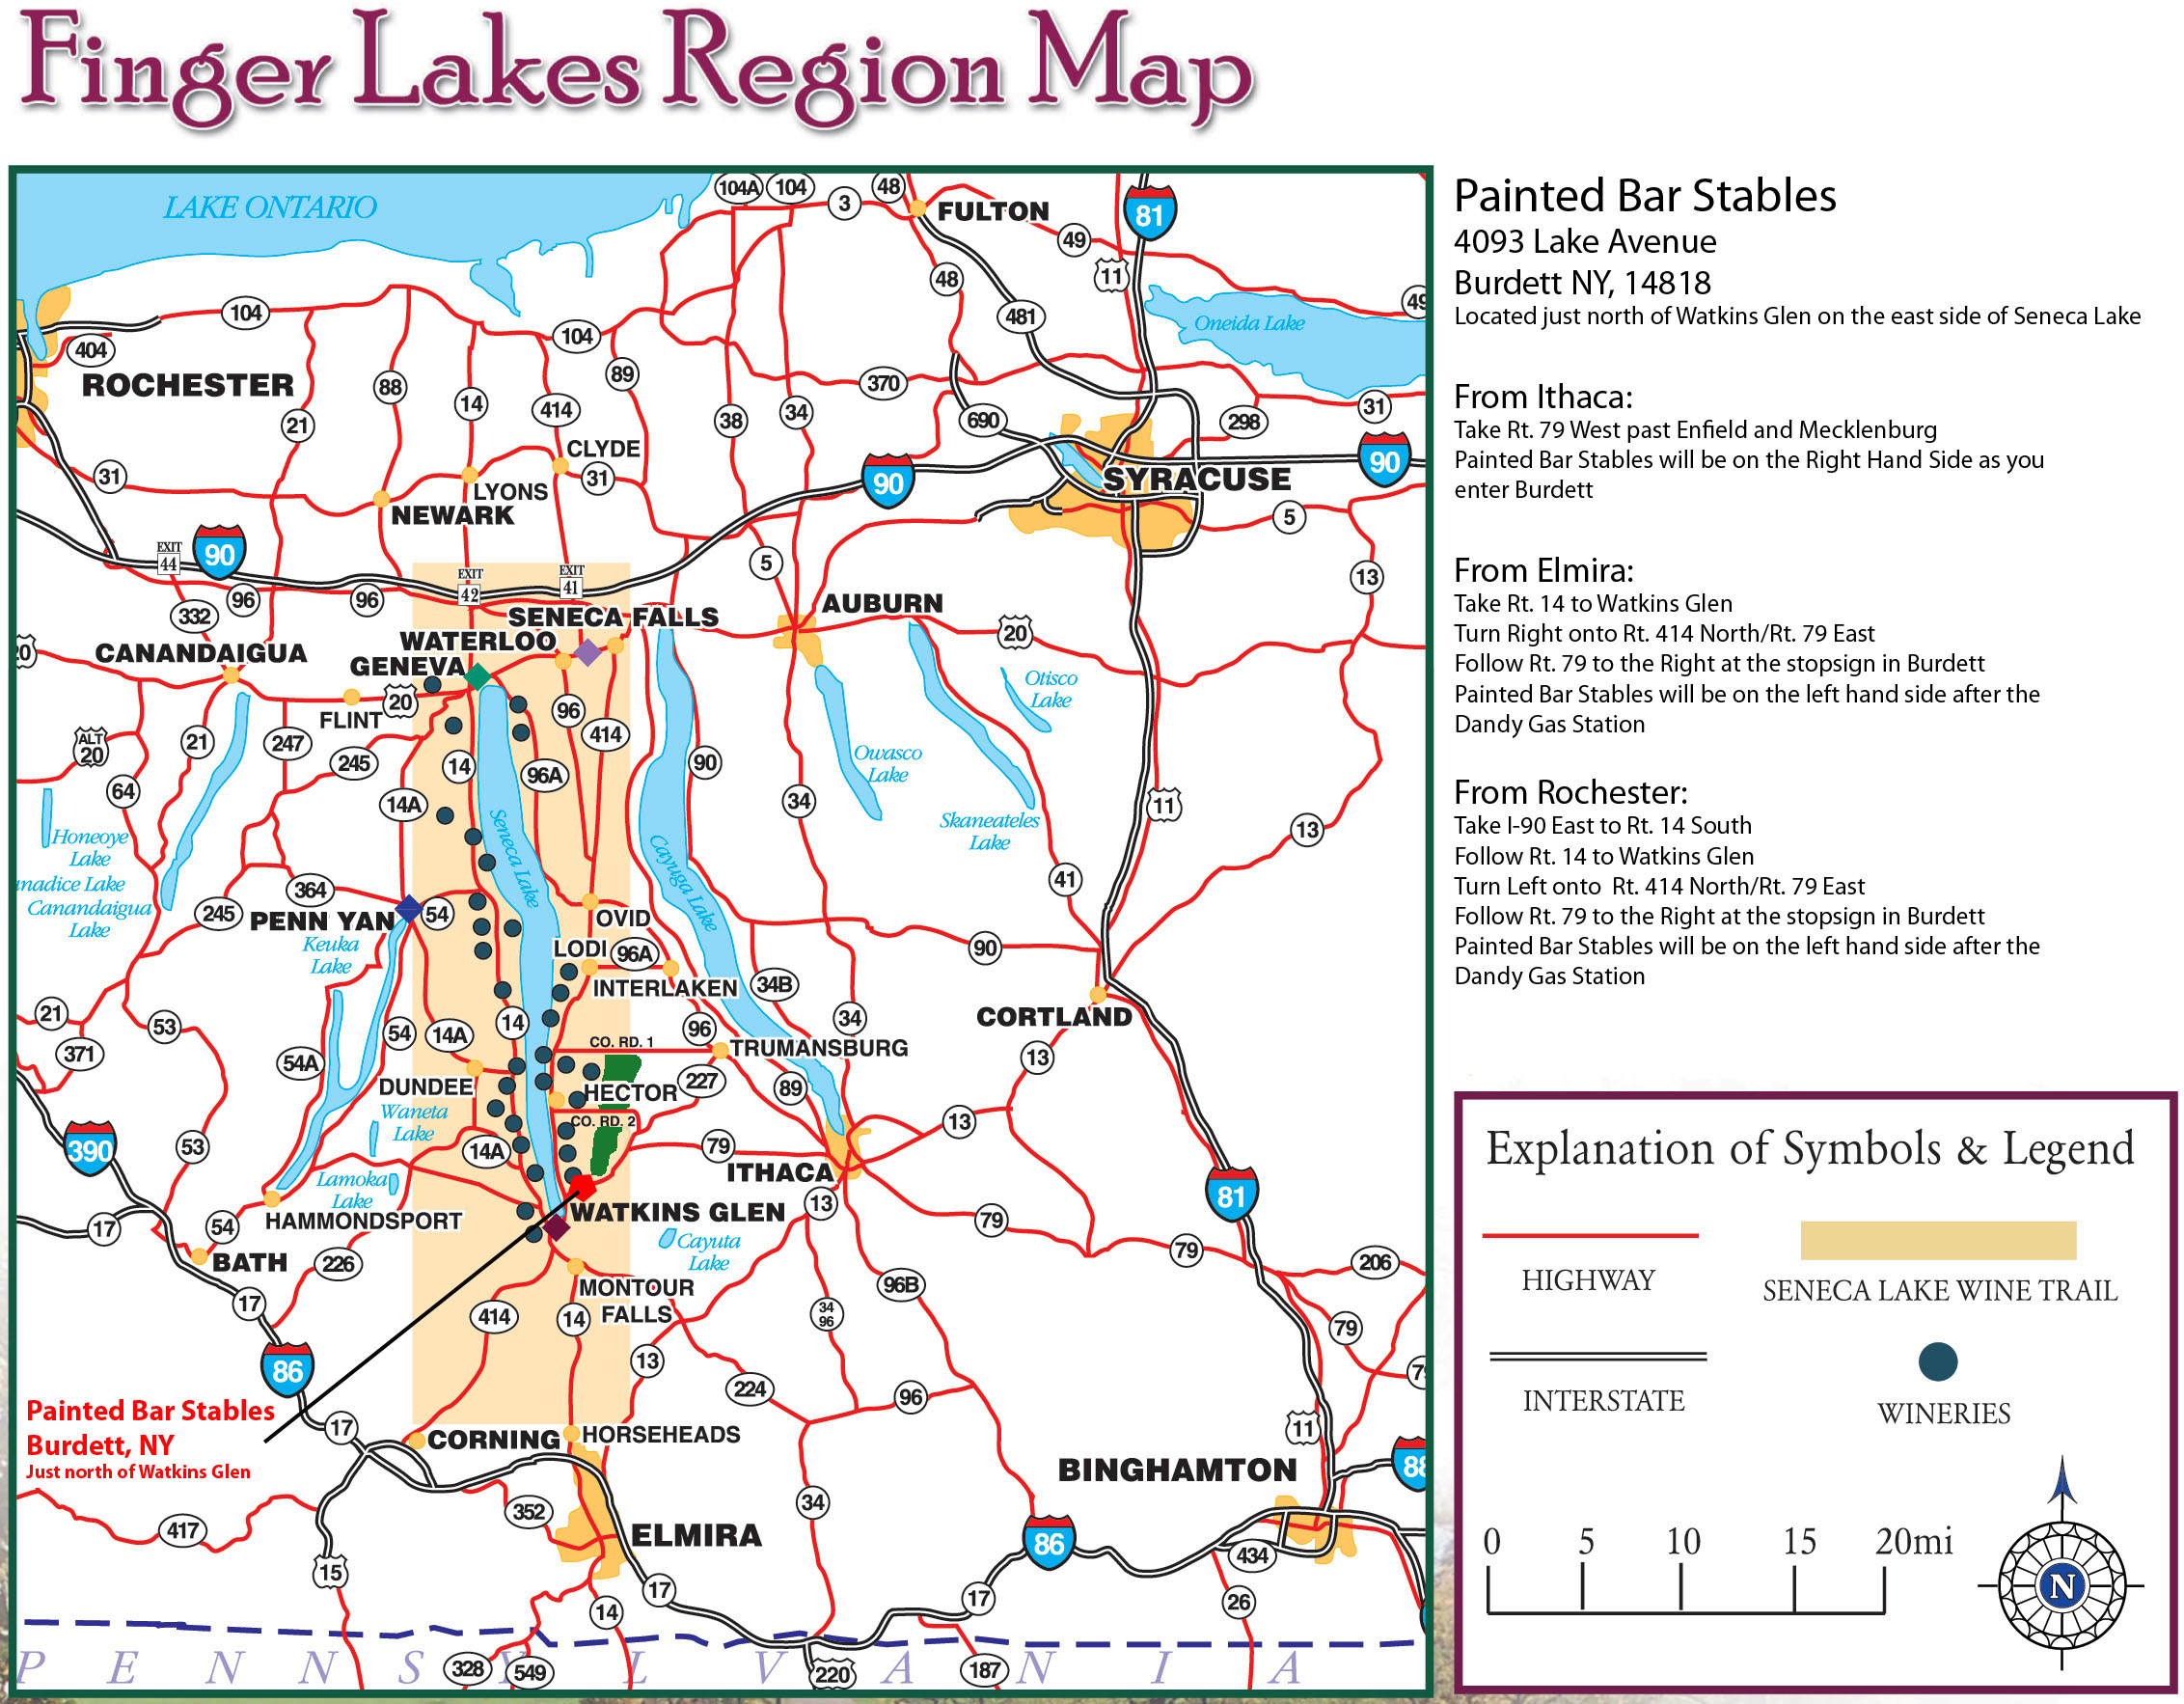 Map of the finger lakes region indicating the Seneca Lake Wine trail and Painted bar Stables' location